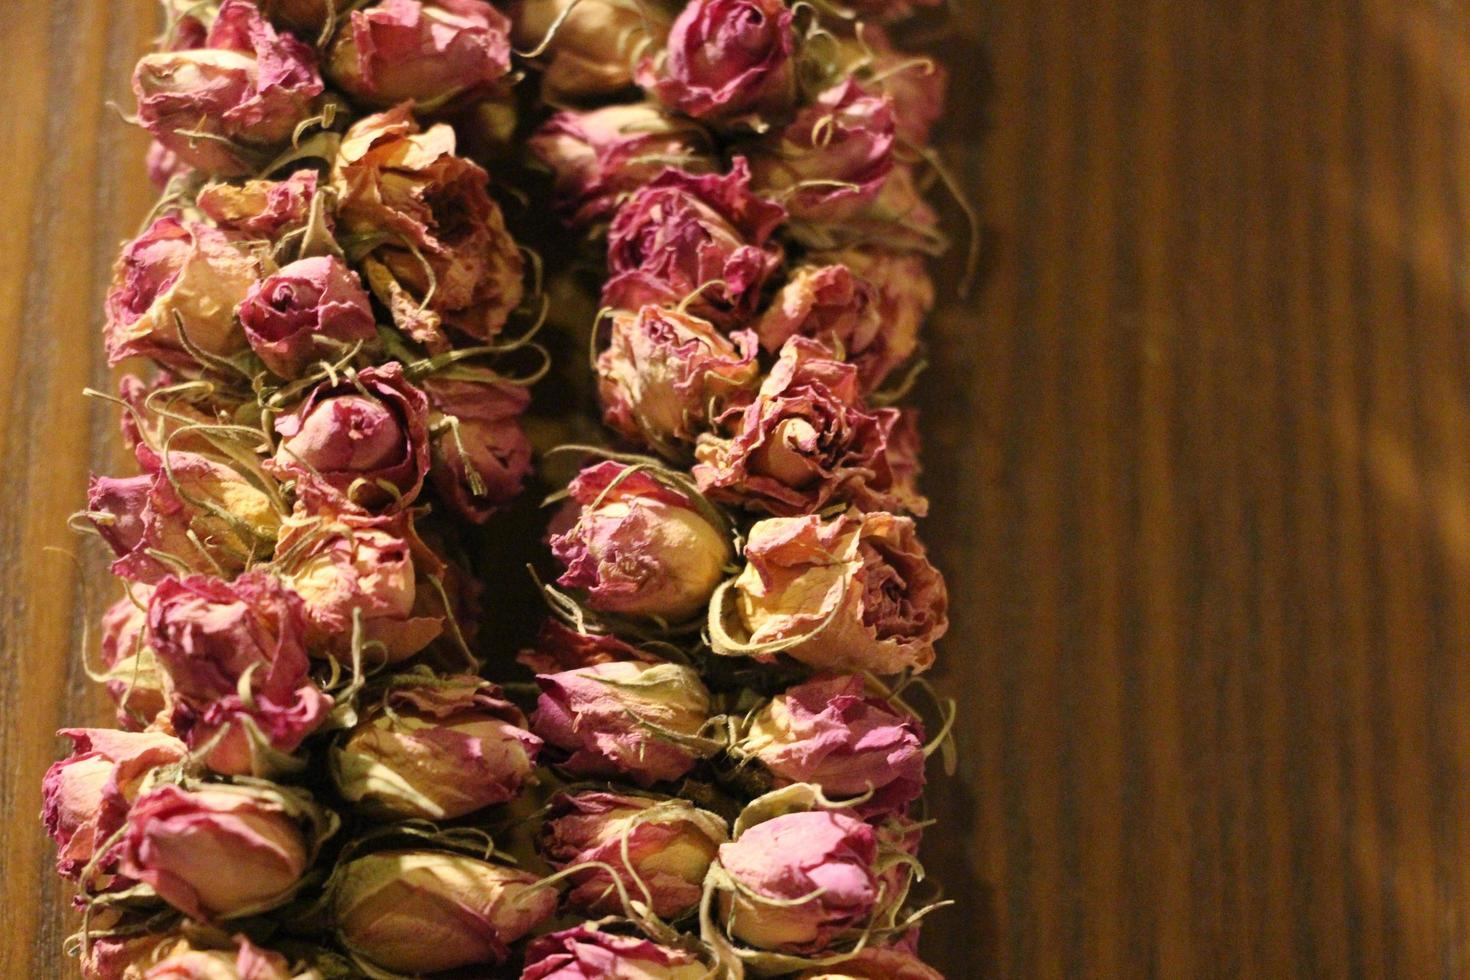 Close-up of dried roses photo